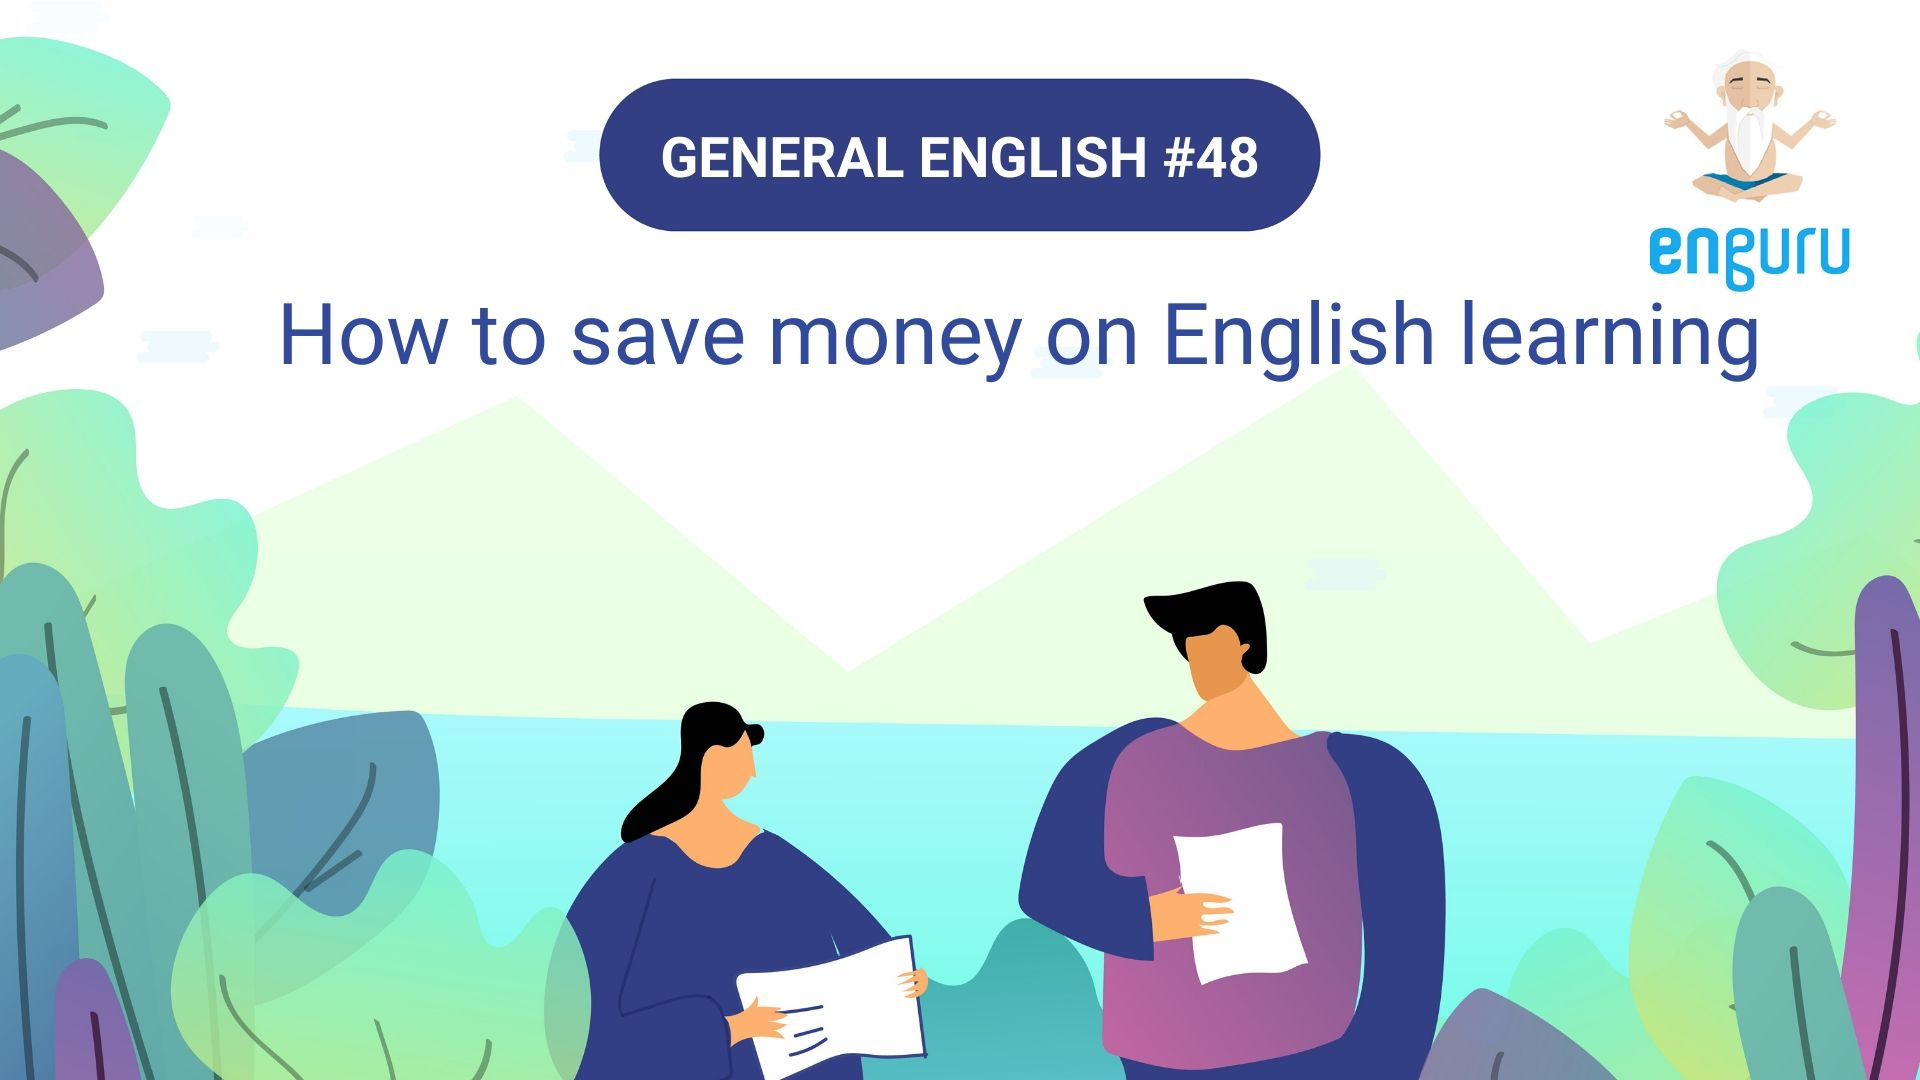 How to save money on English learning